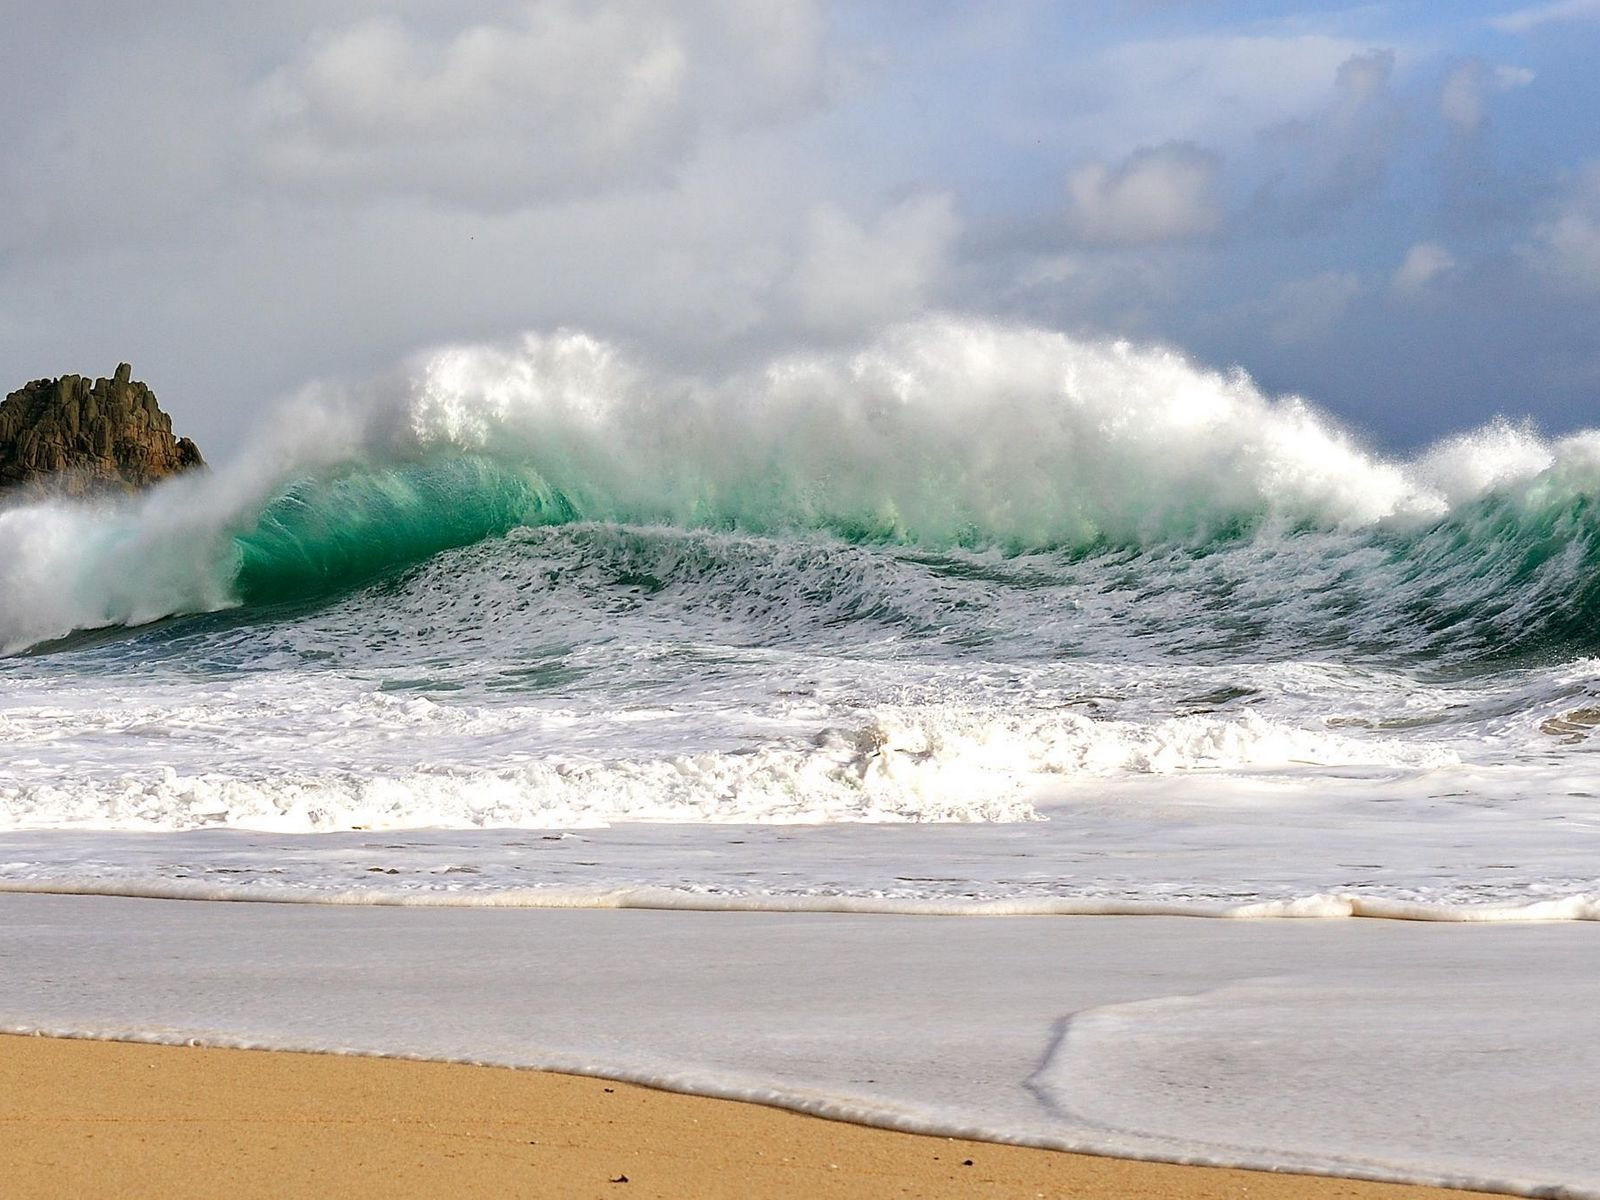 1600x1200 Wallpaper waves, storm, coast, bad weather, force, power, blow, streams, wind, splashes